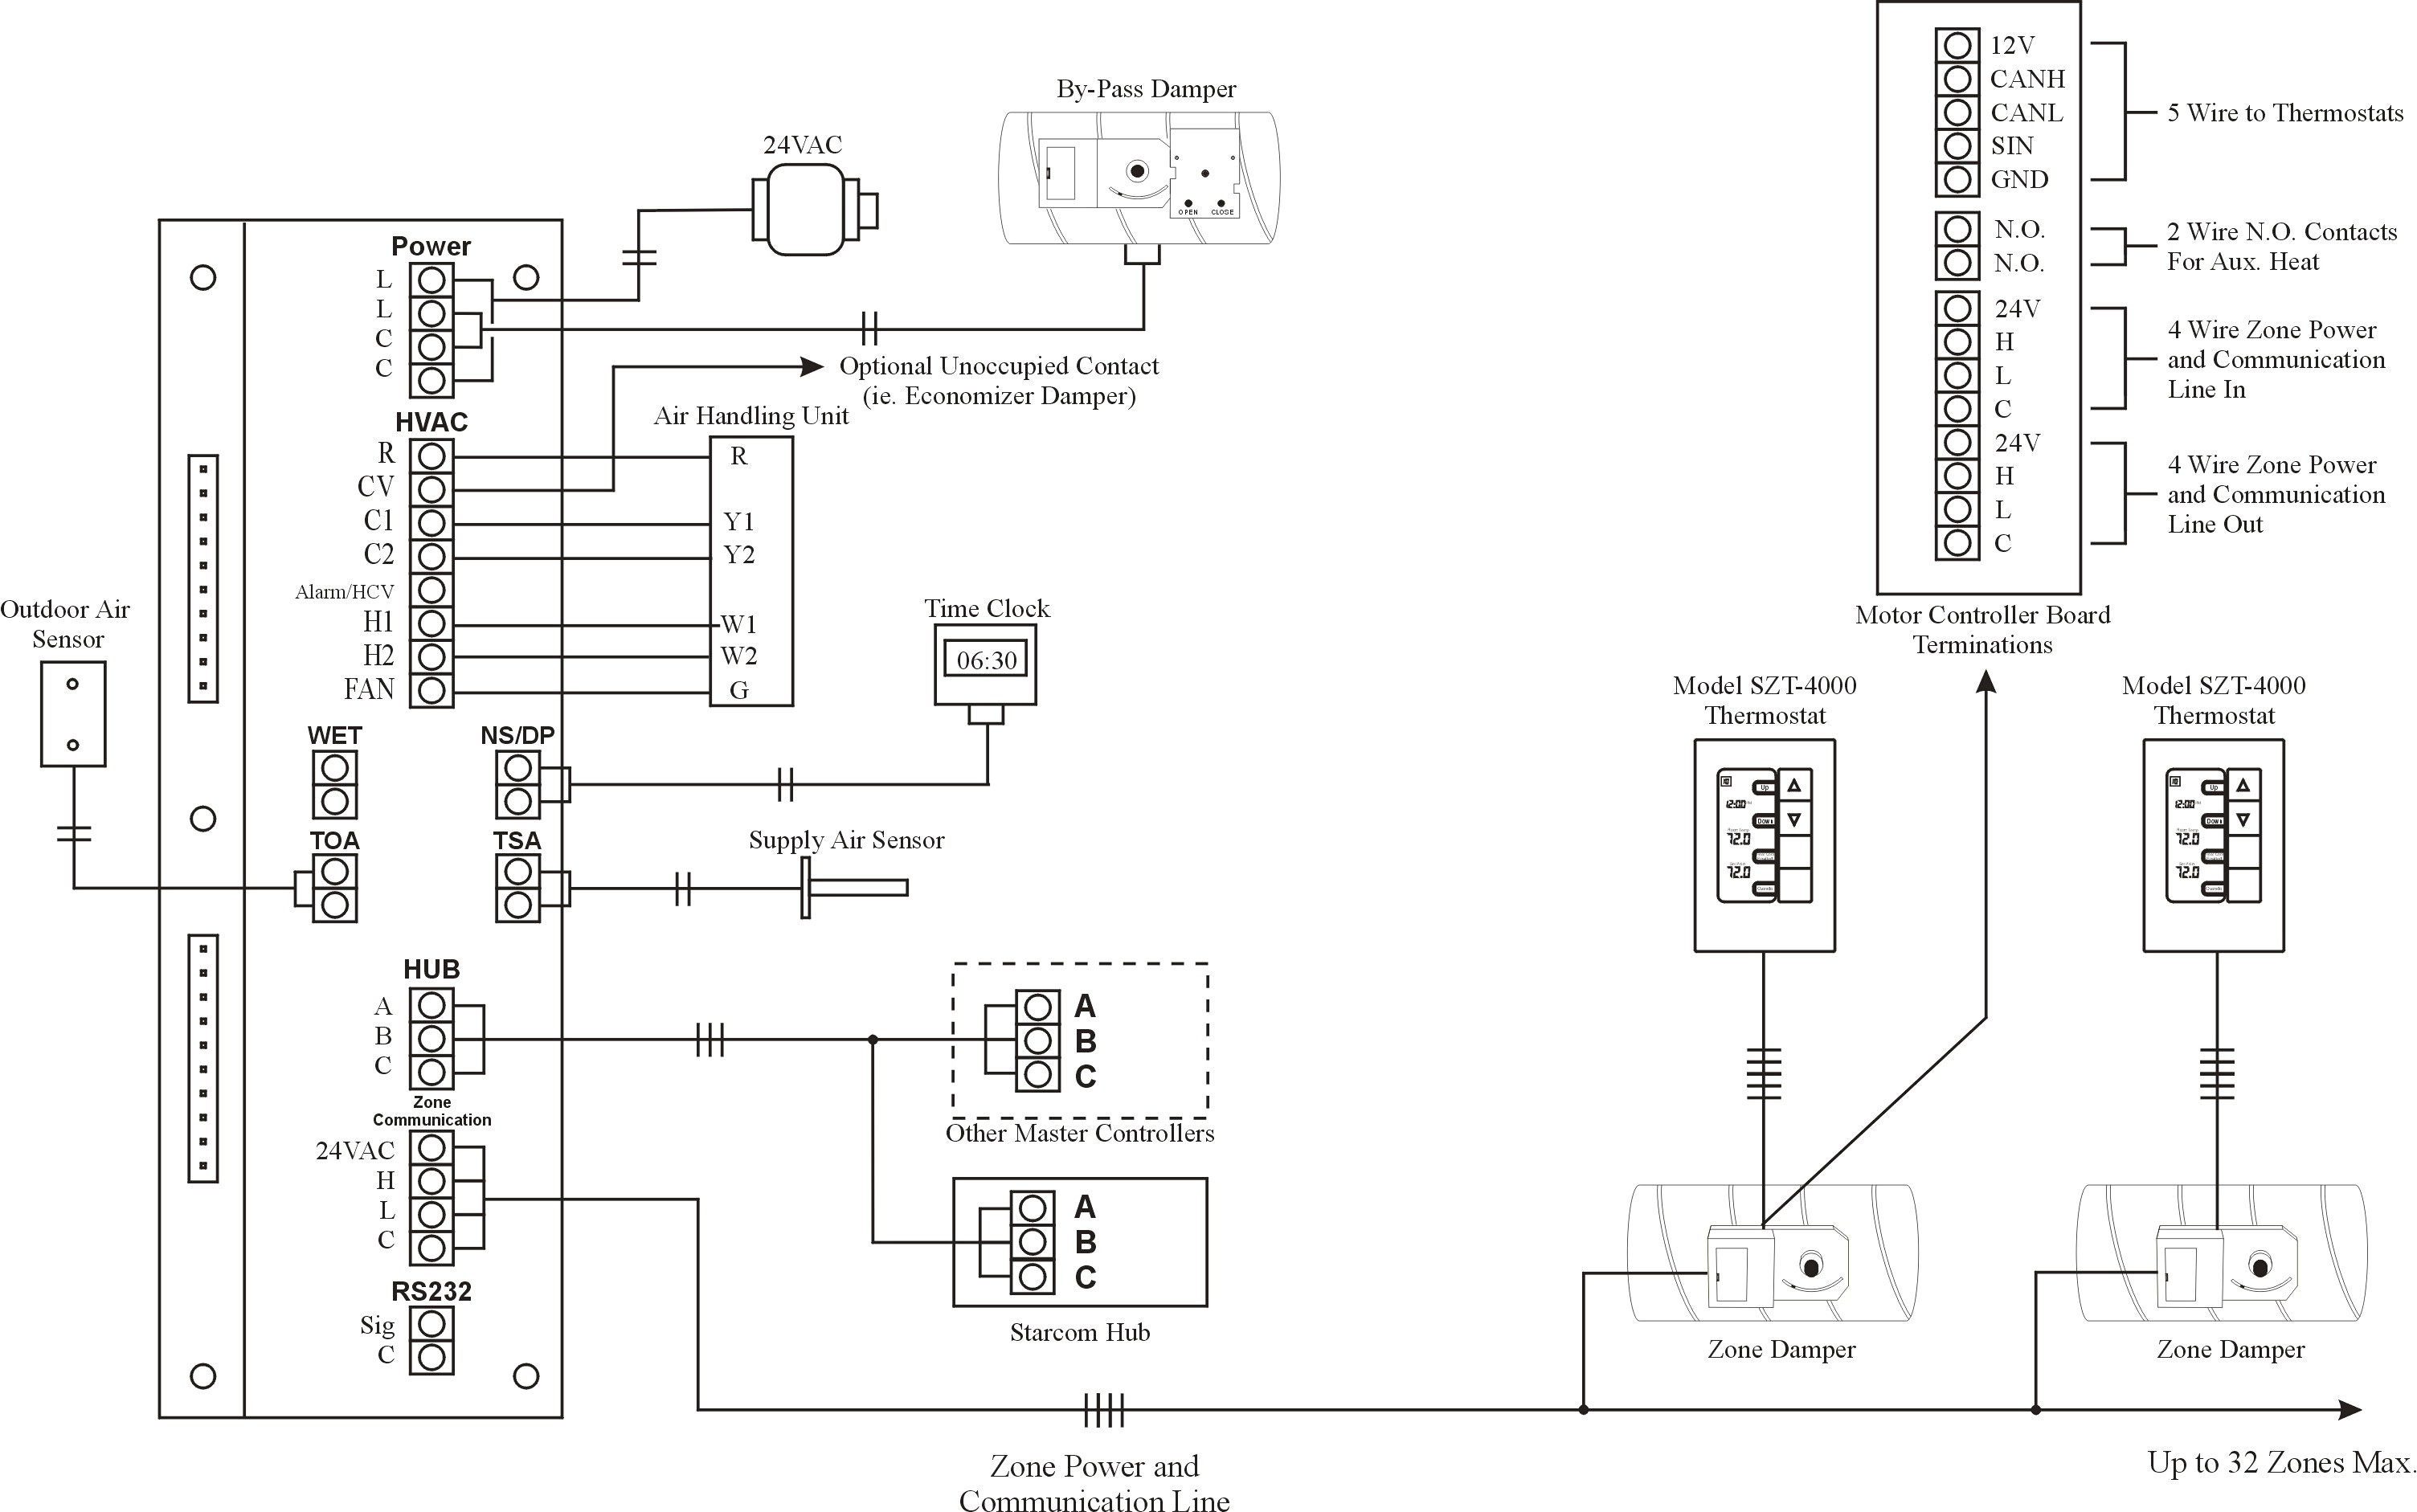 fire alarm wiring diagram schematic Collection-Wiring Diagram For Alarm System Fresh Wiring Diagram For Heating System New Fire Alarm Wiring Diagram Best 7-d